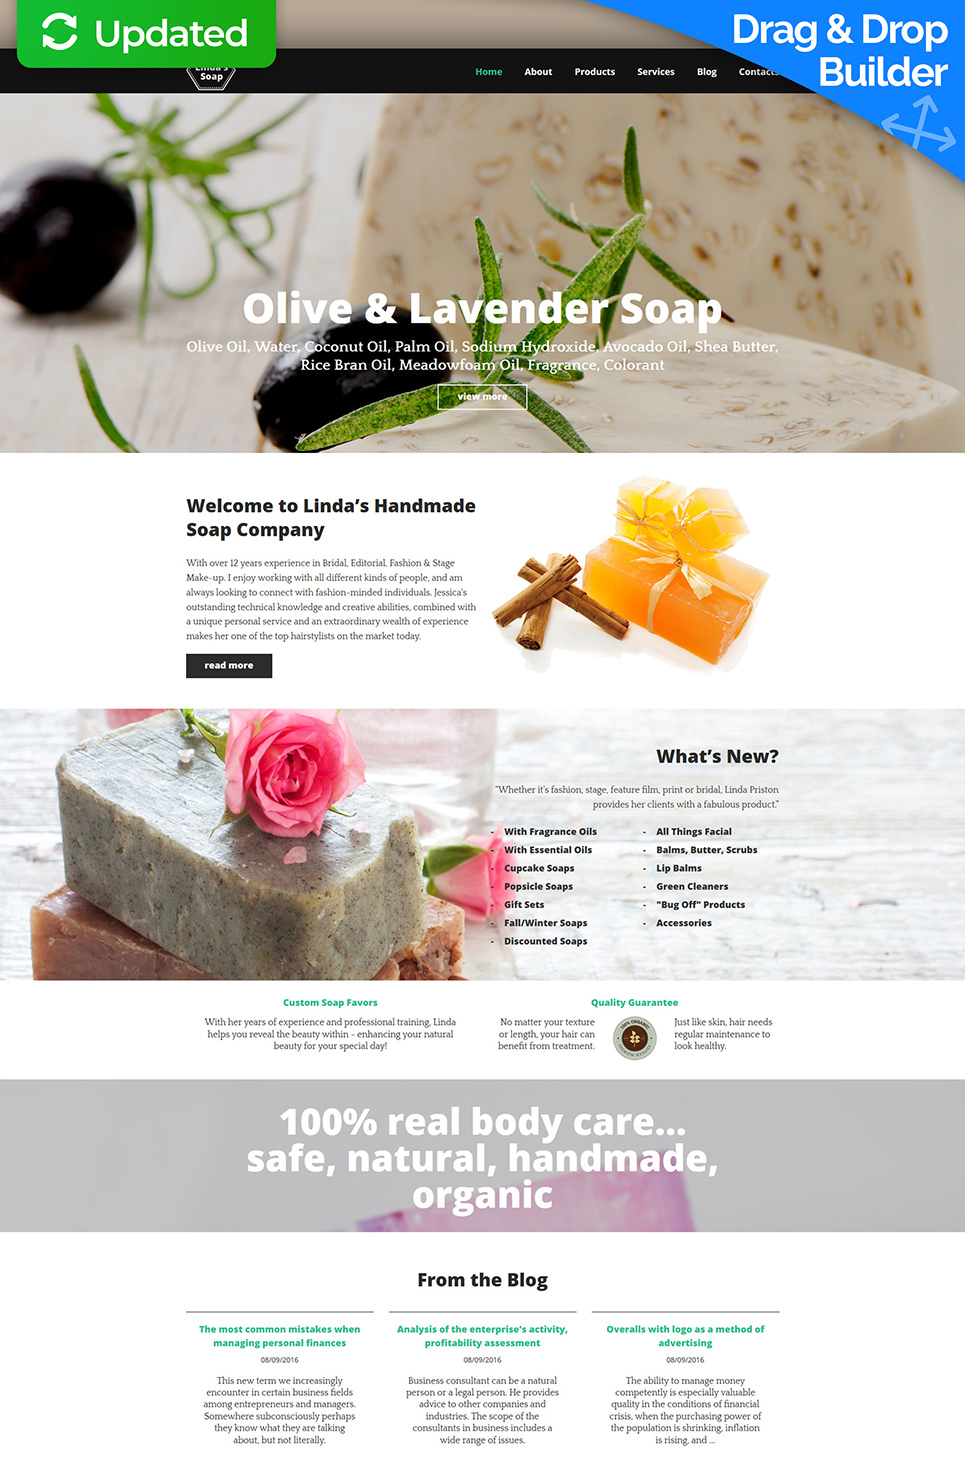 Handmade cleanser manufacturer site theme